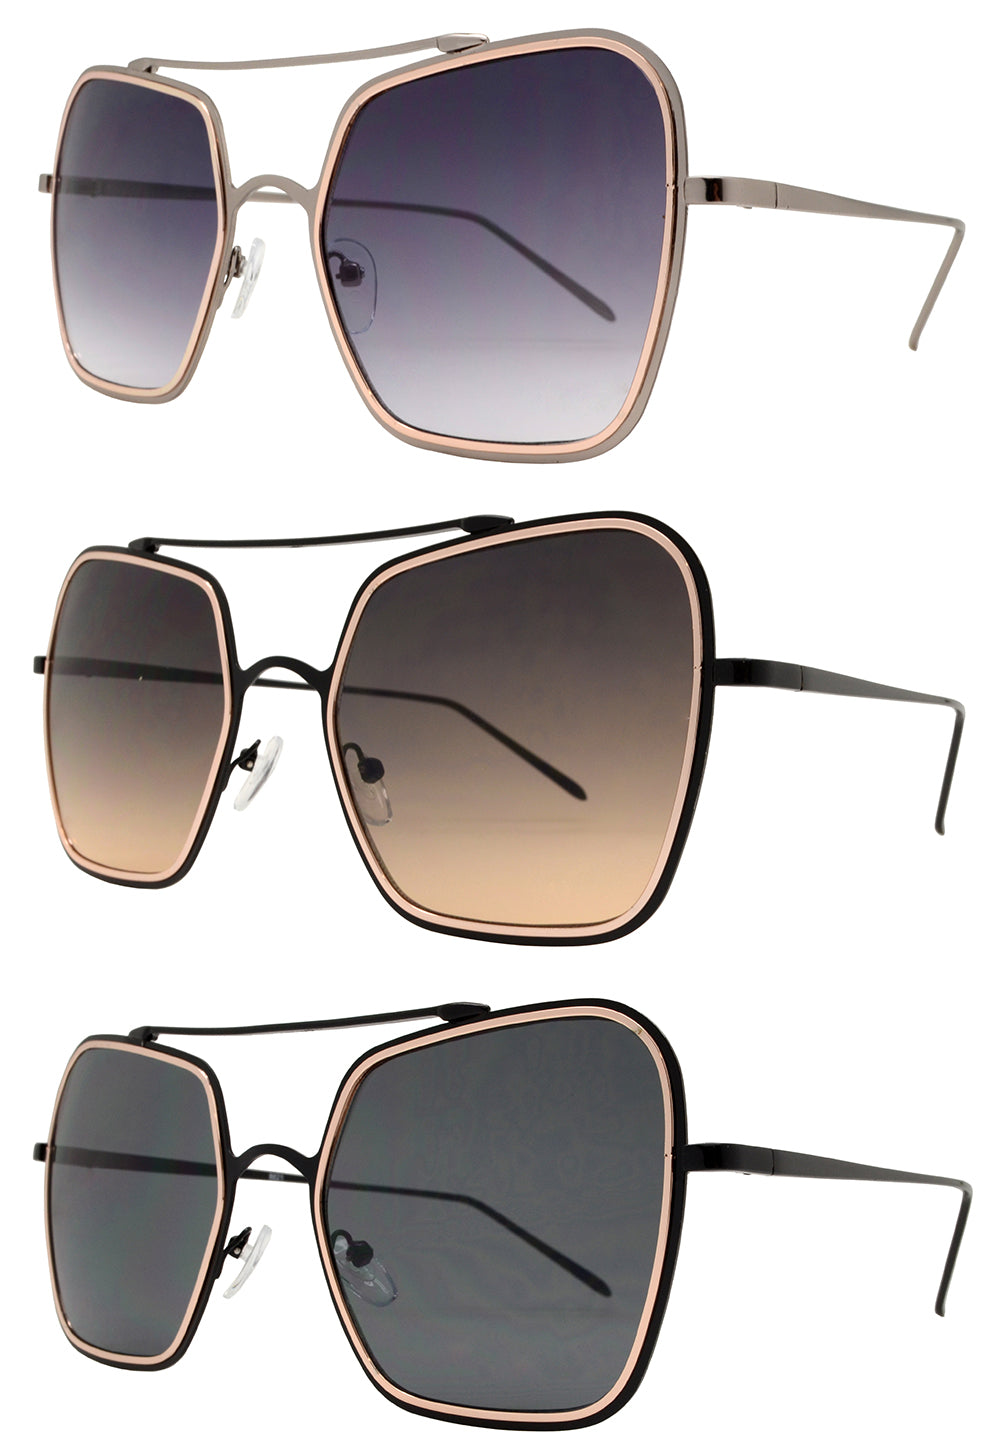 8621 - Modern Square Metal Sunglasses